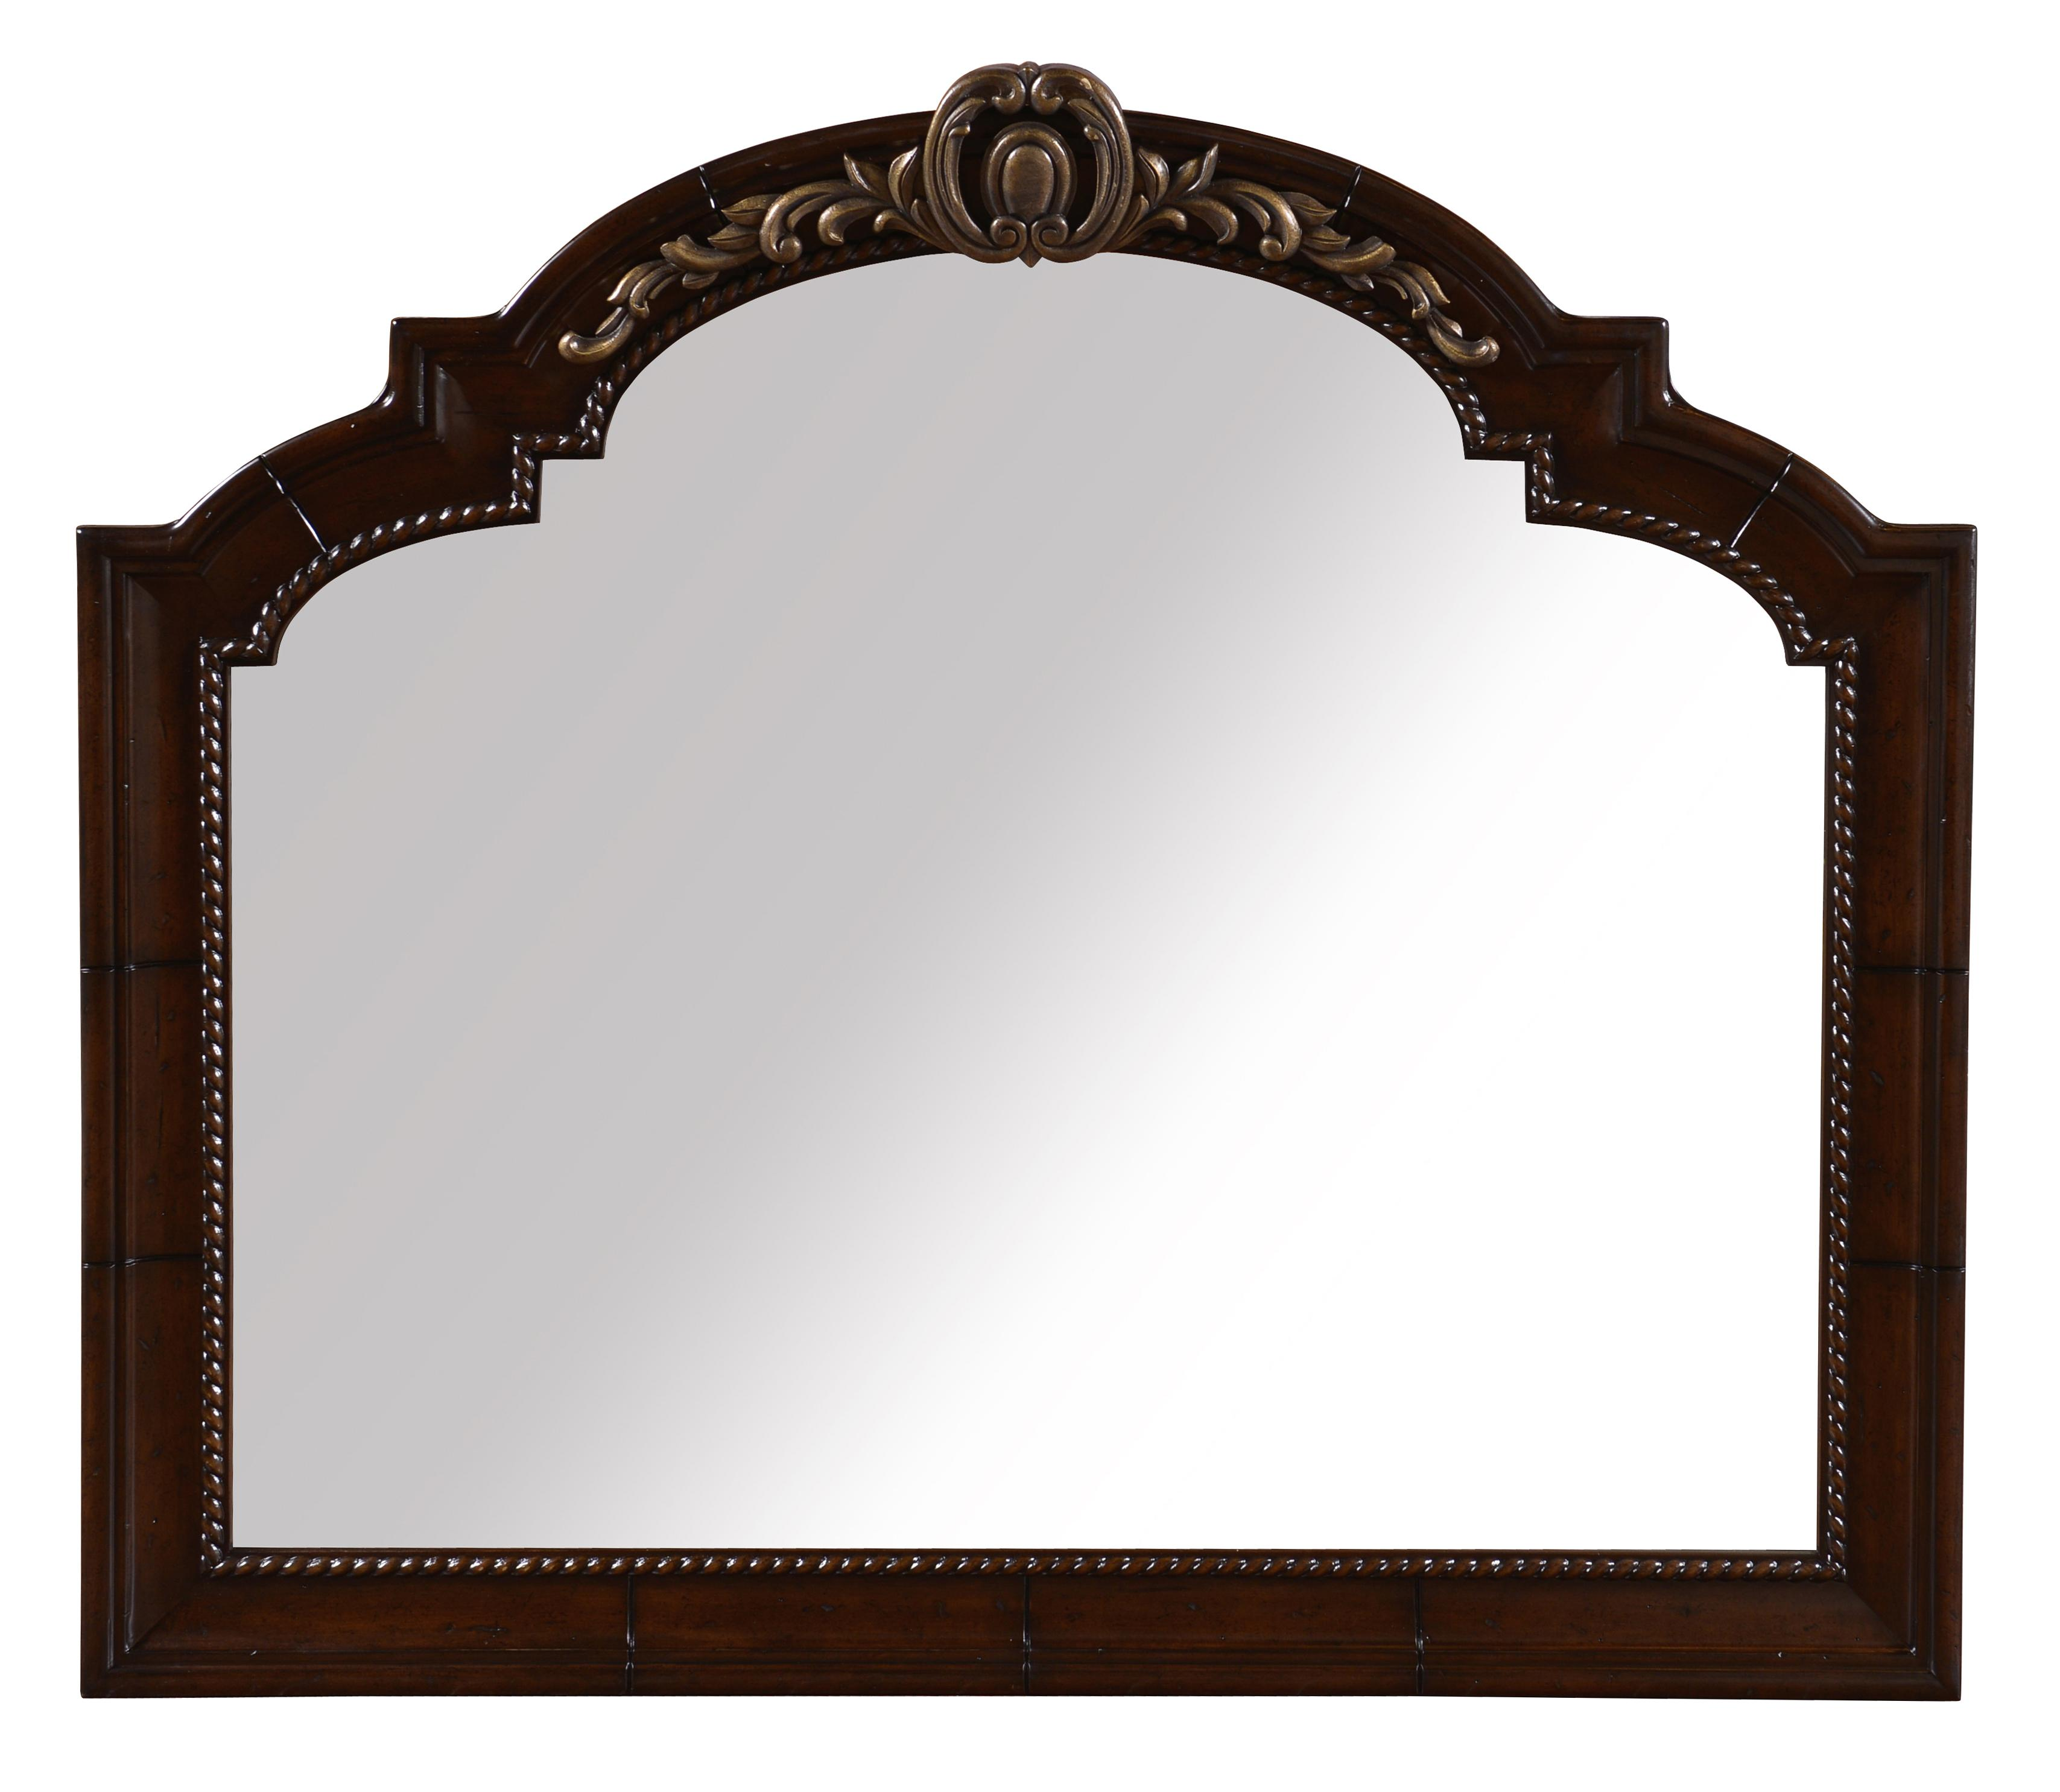 Belfort Signature Cortona Traditional Wall Mirror - Item Number: 209121-2304